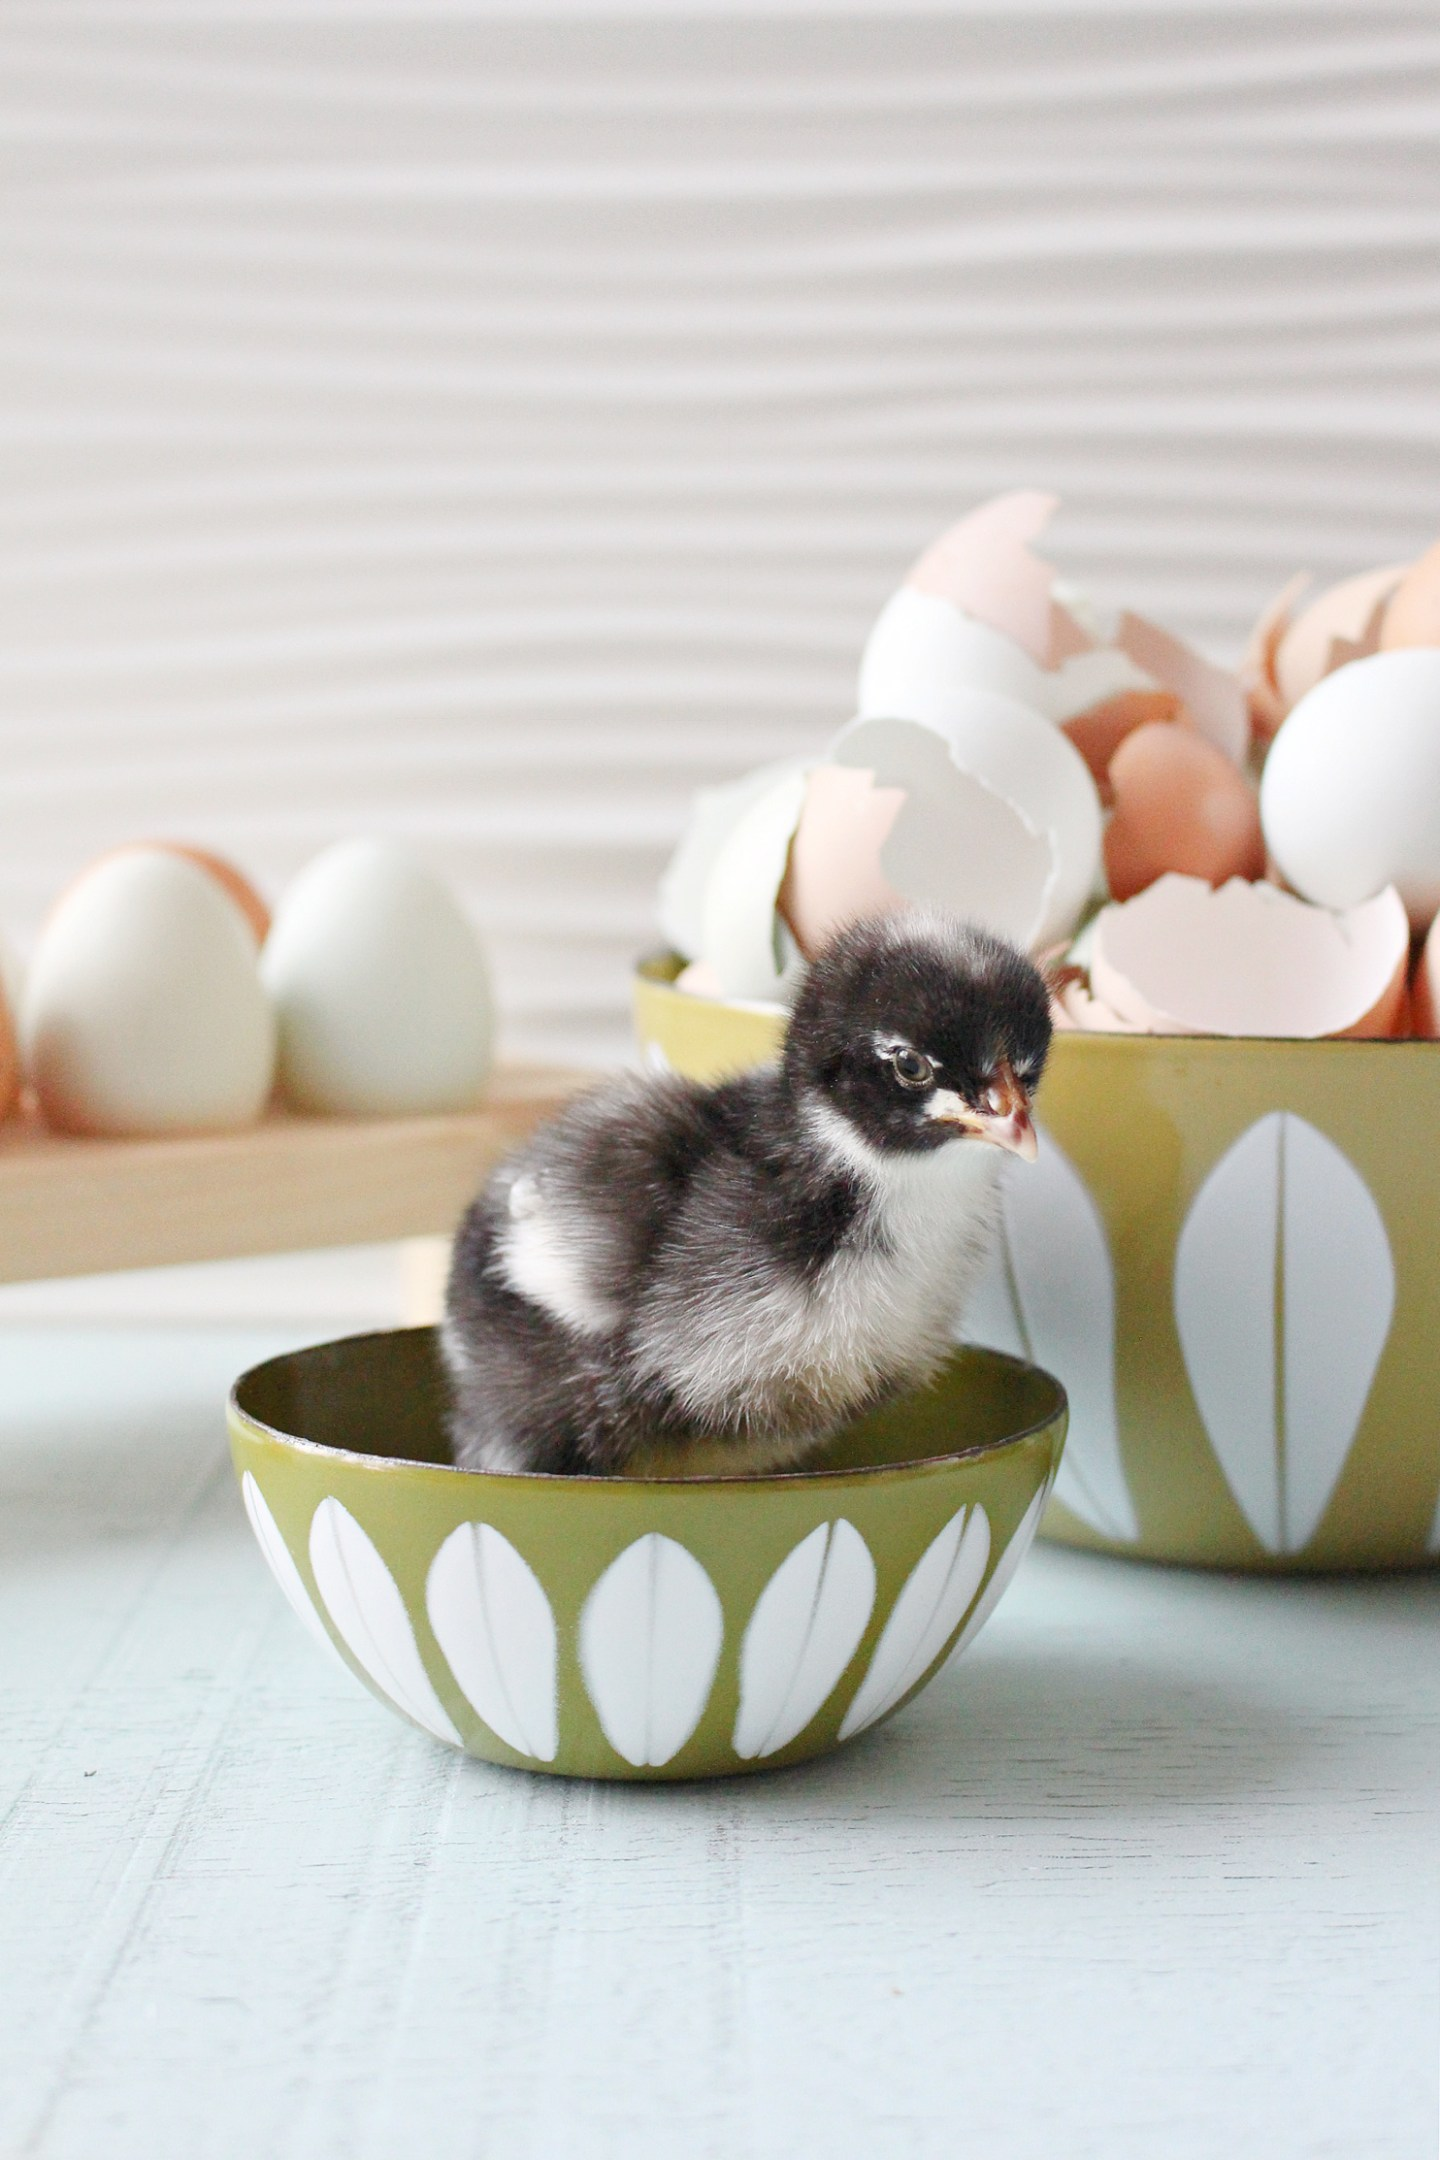 Chick in Cathrineholm Bowl